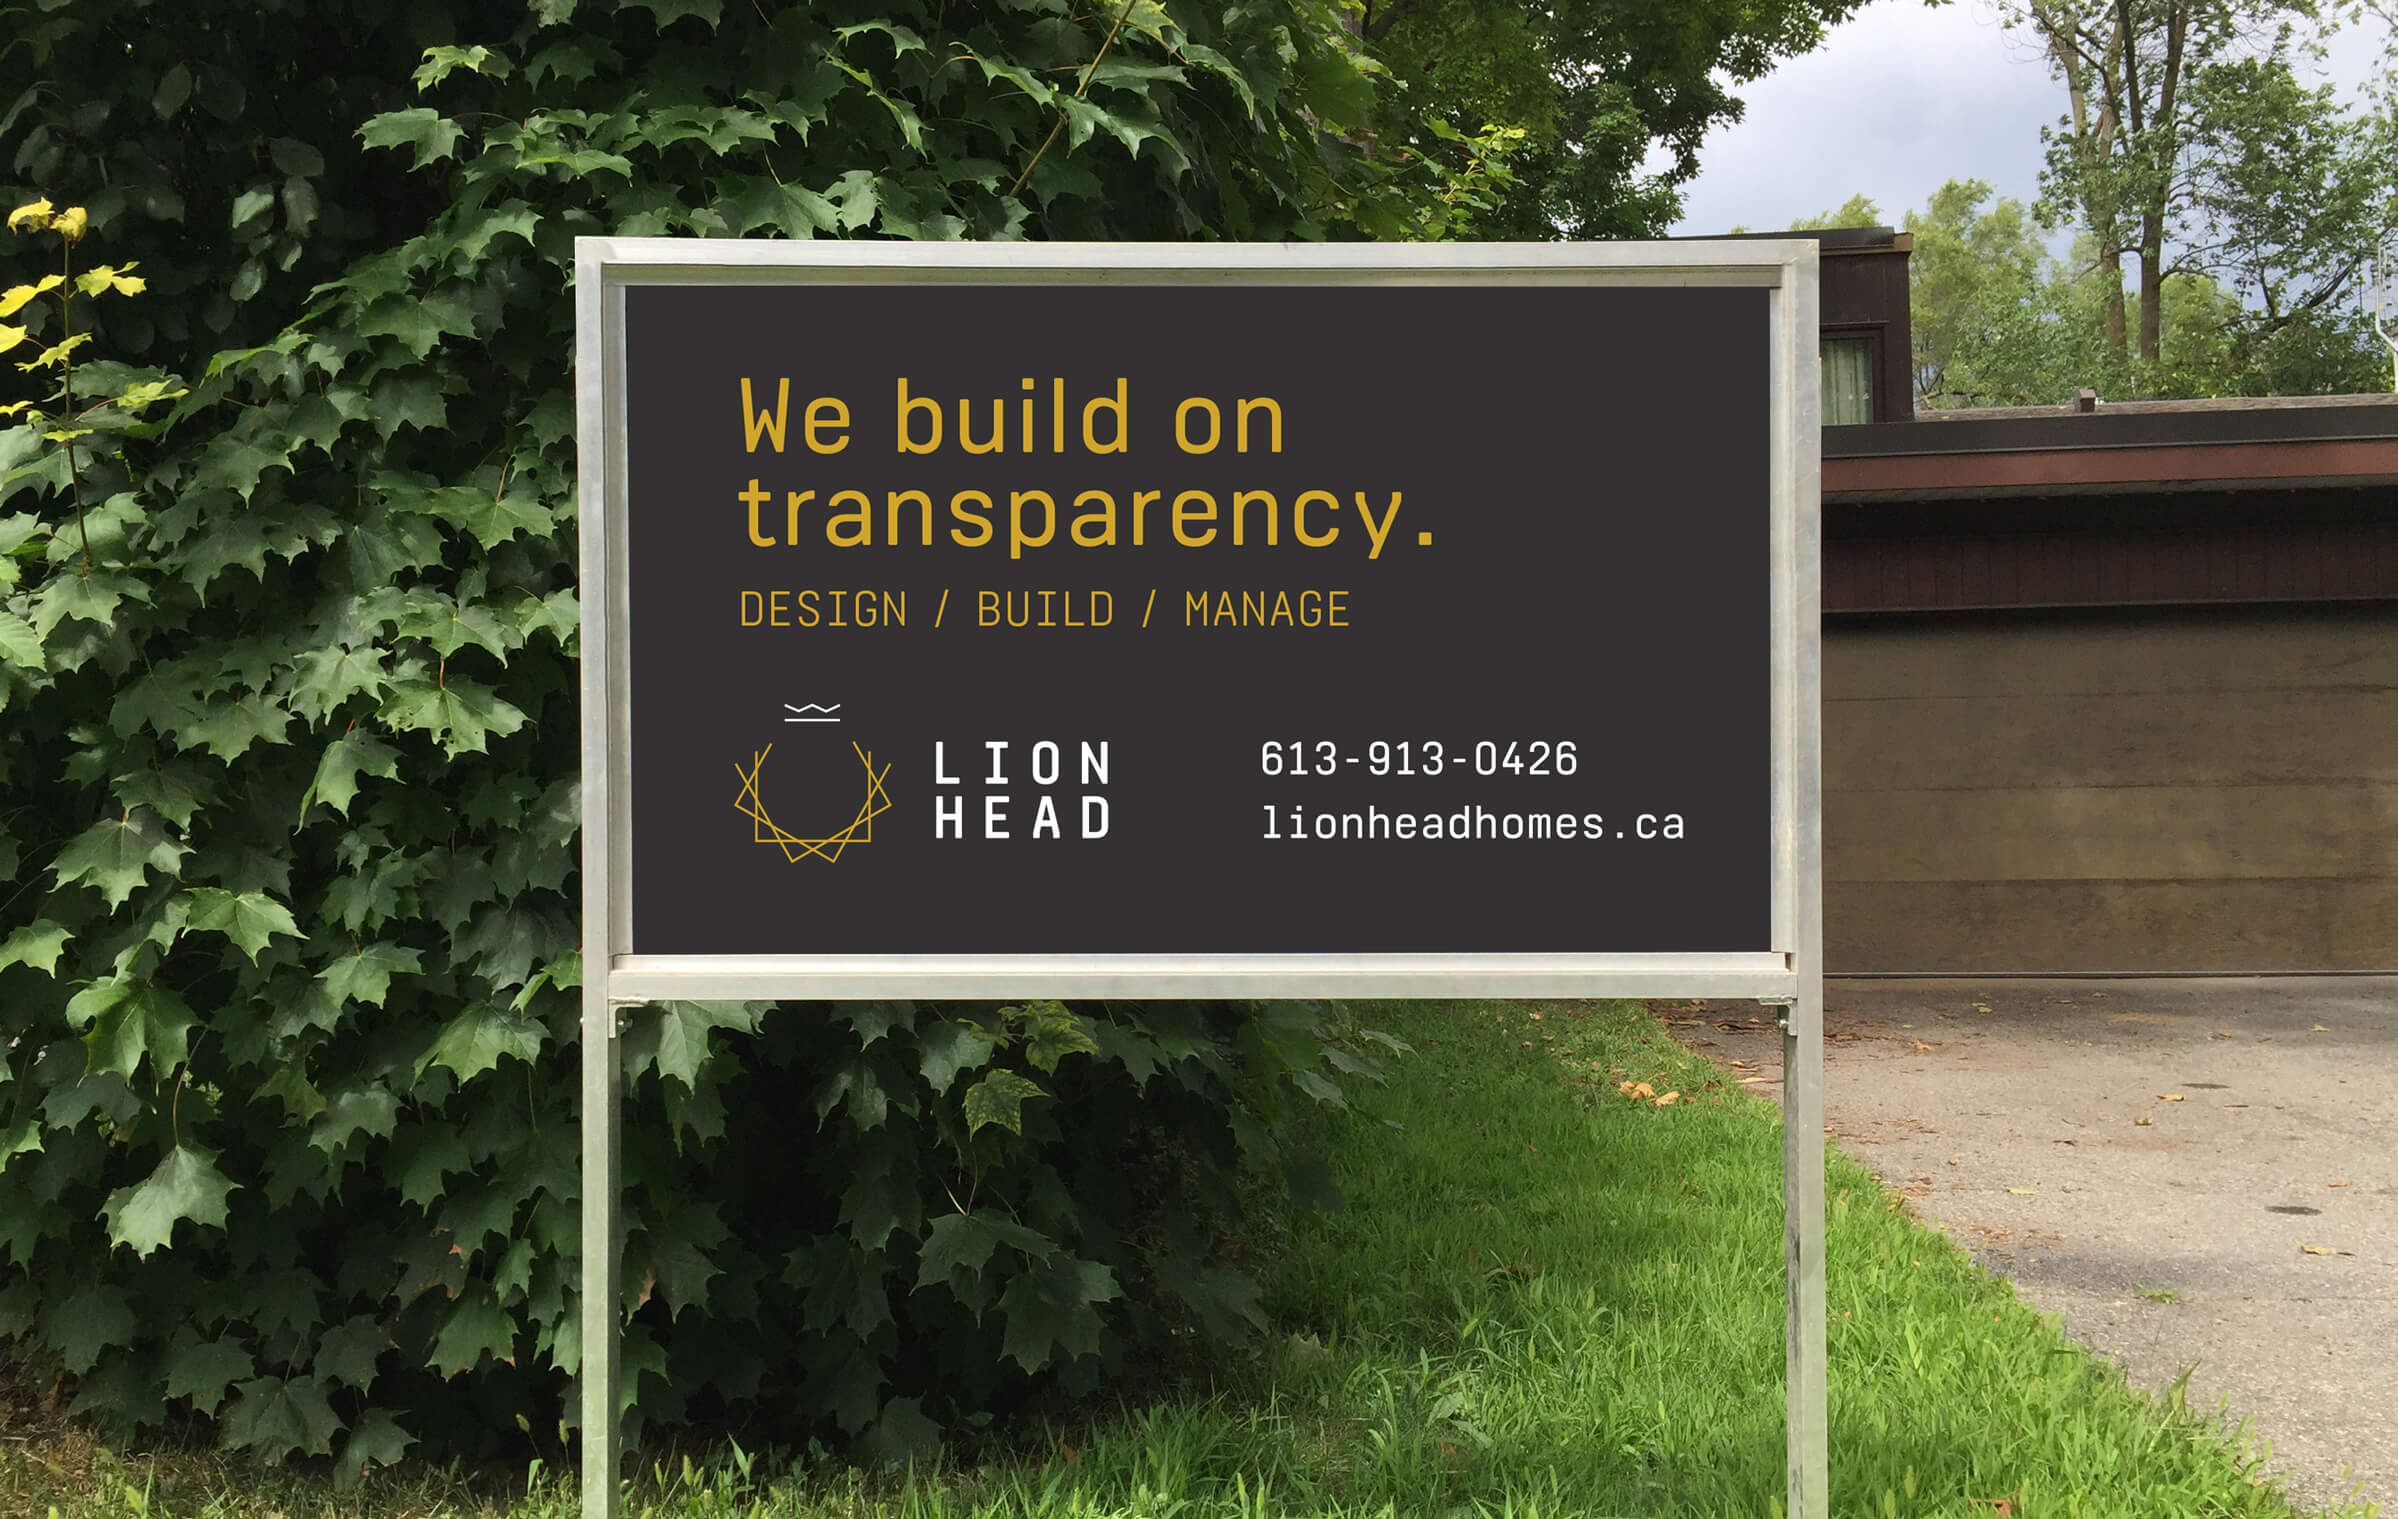 Signage for Lionhead, an Ottawa building firm by Graphic Design Studio idApostle